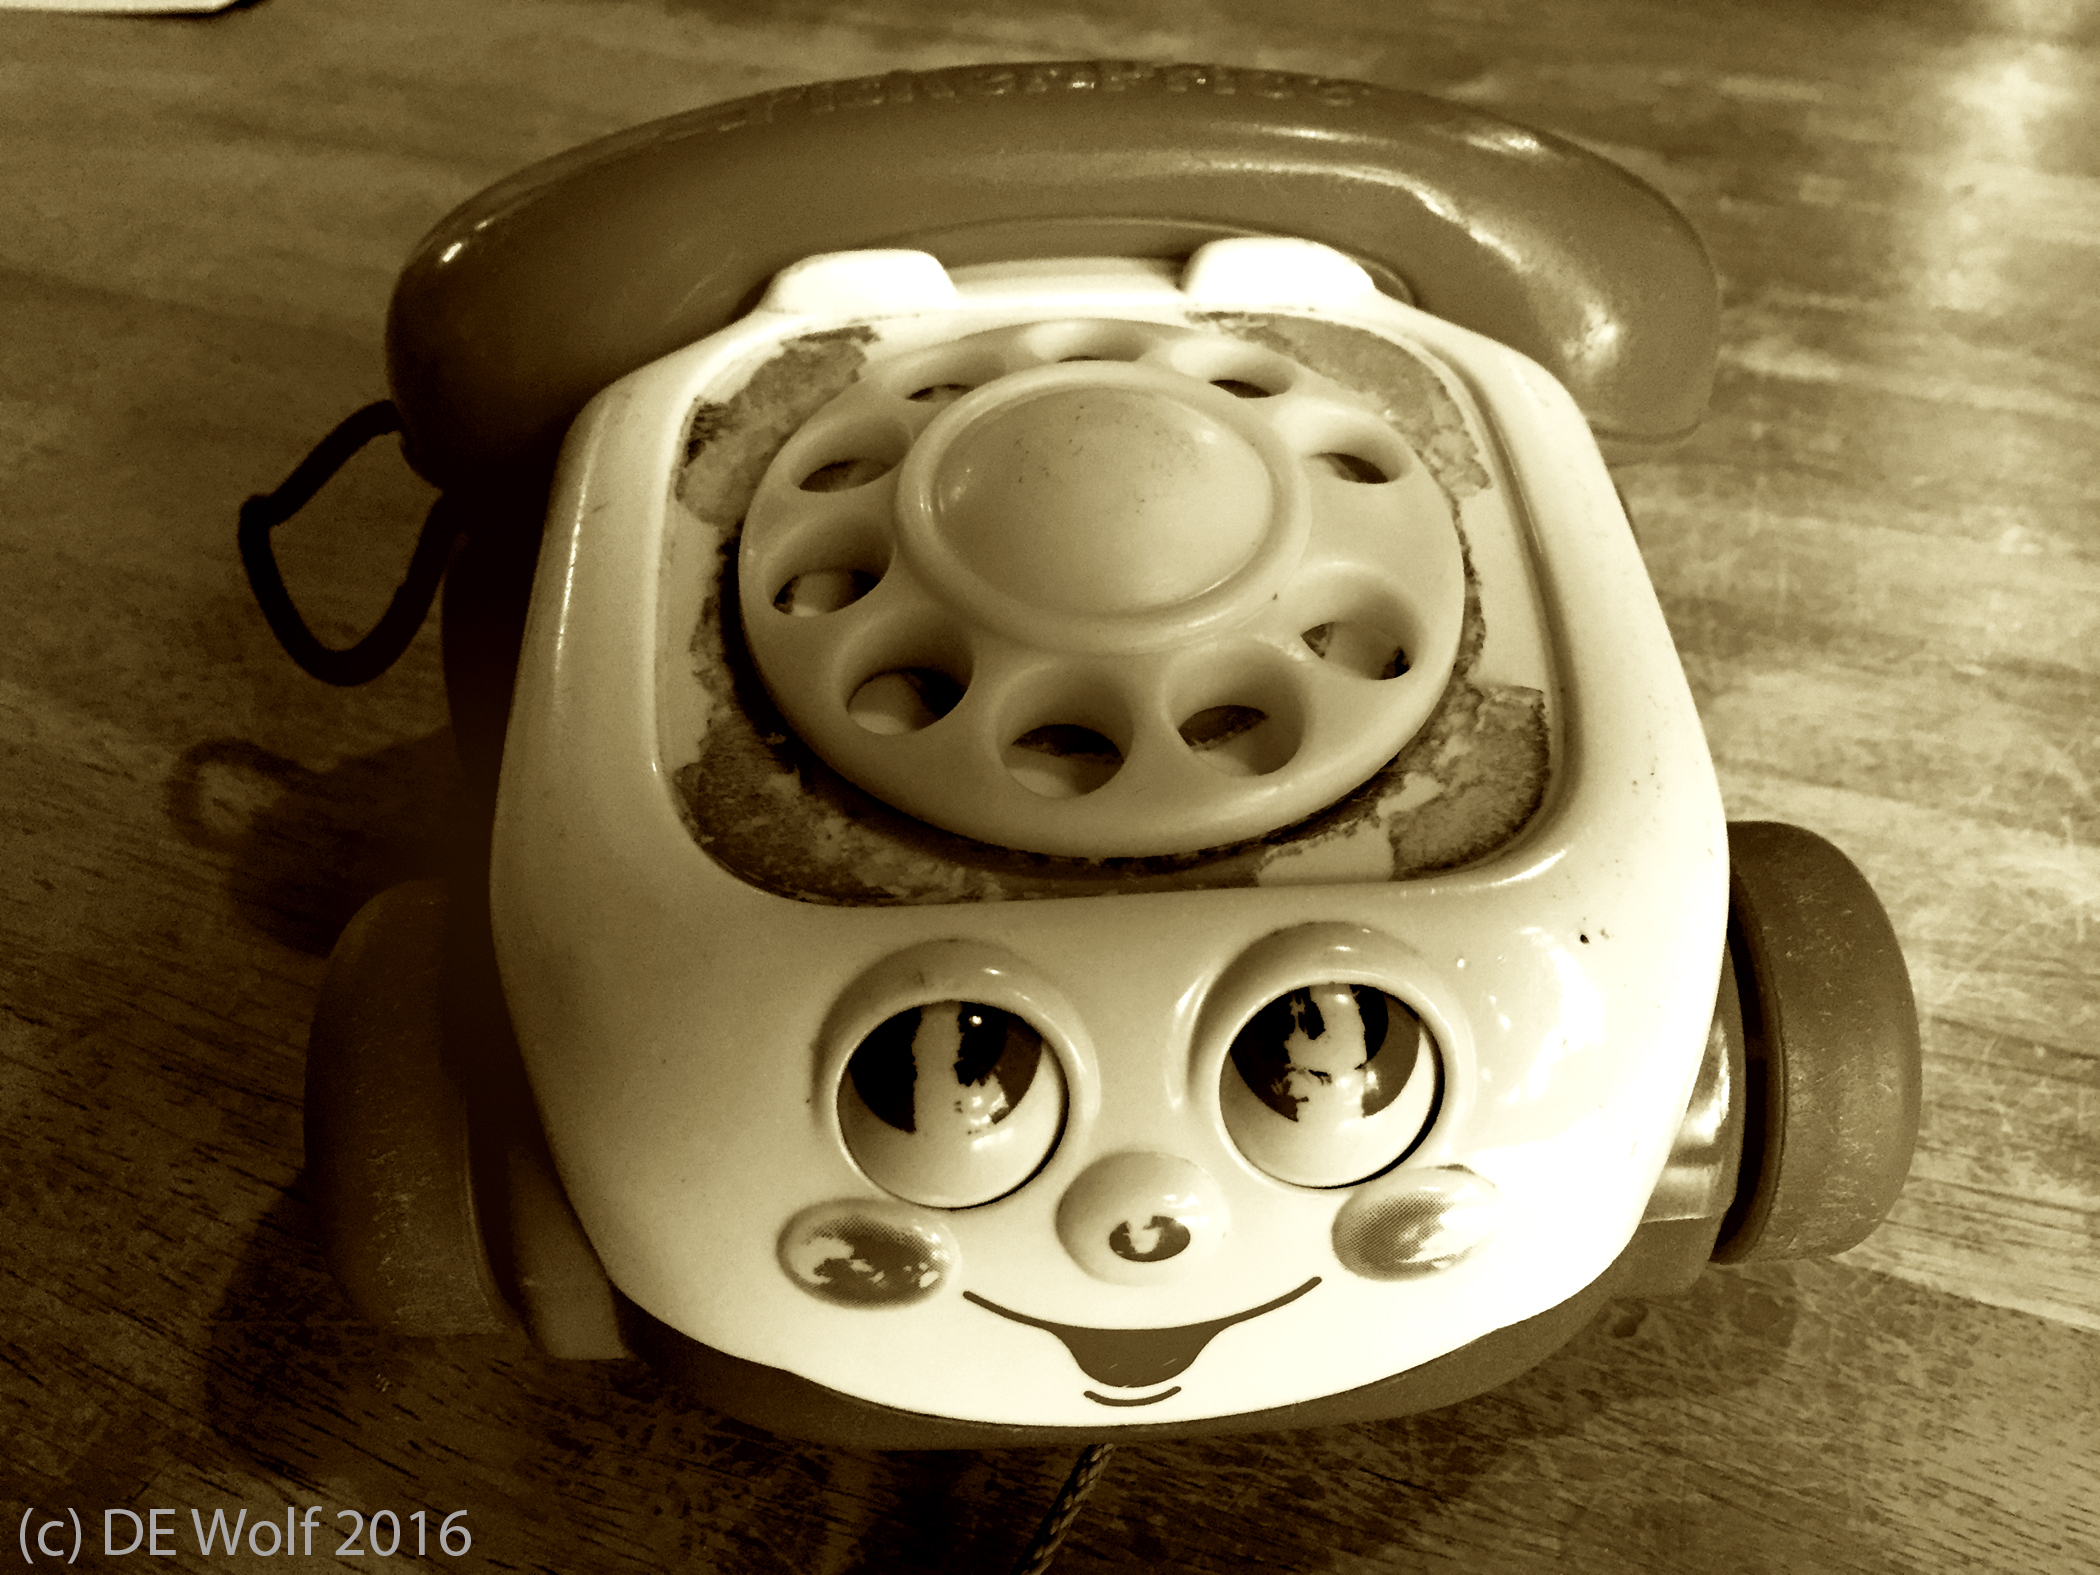 Figure 1 - Toy phone a study in obsolescence, IPhone photograph, (c) DE Wolf 2016.